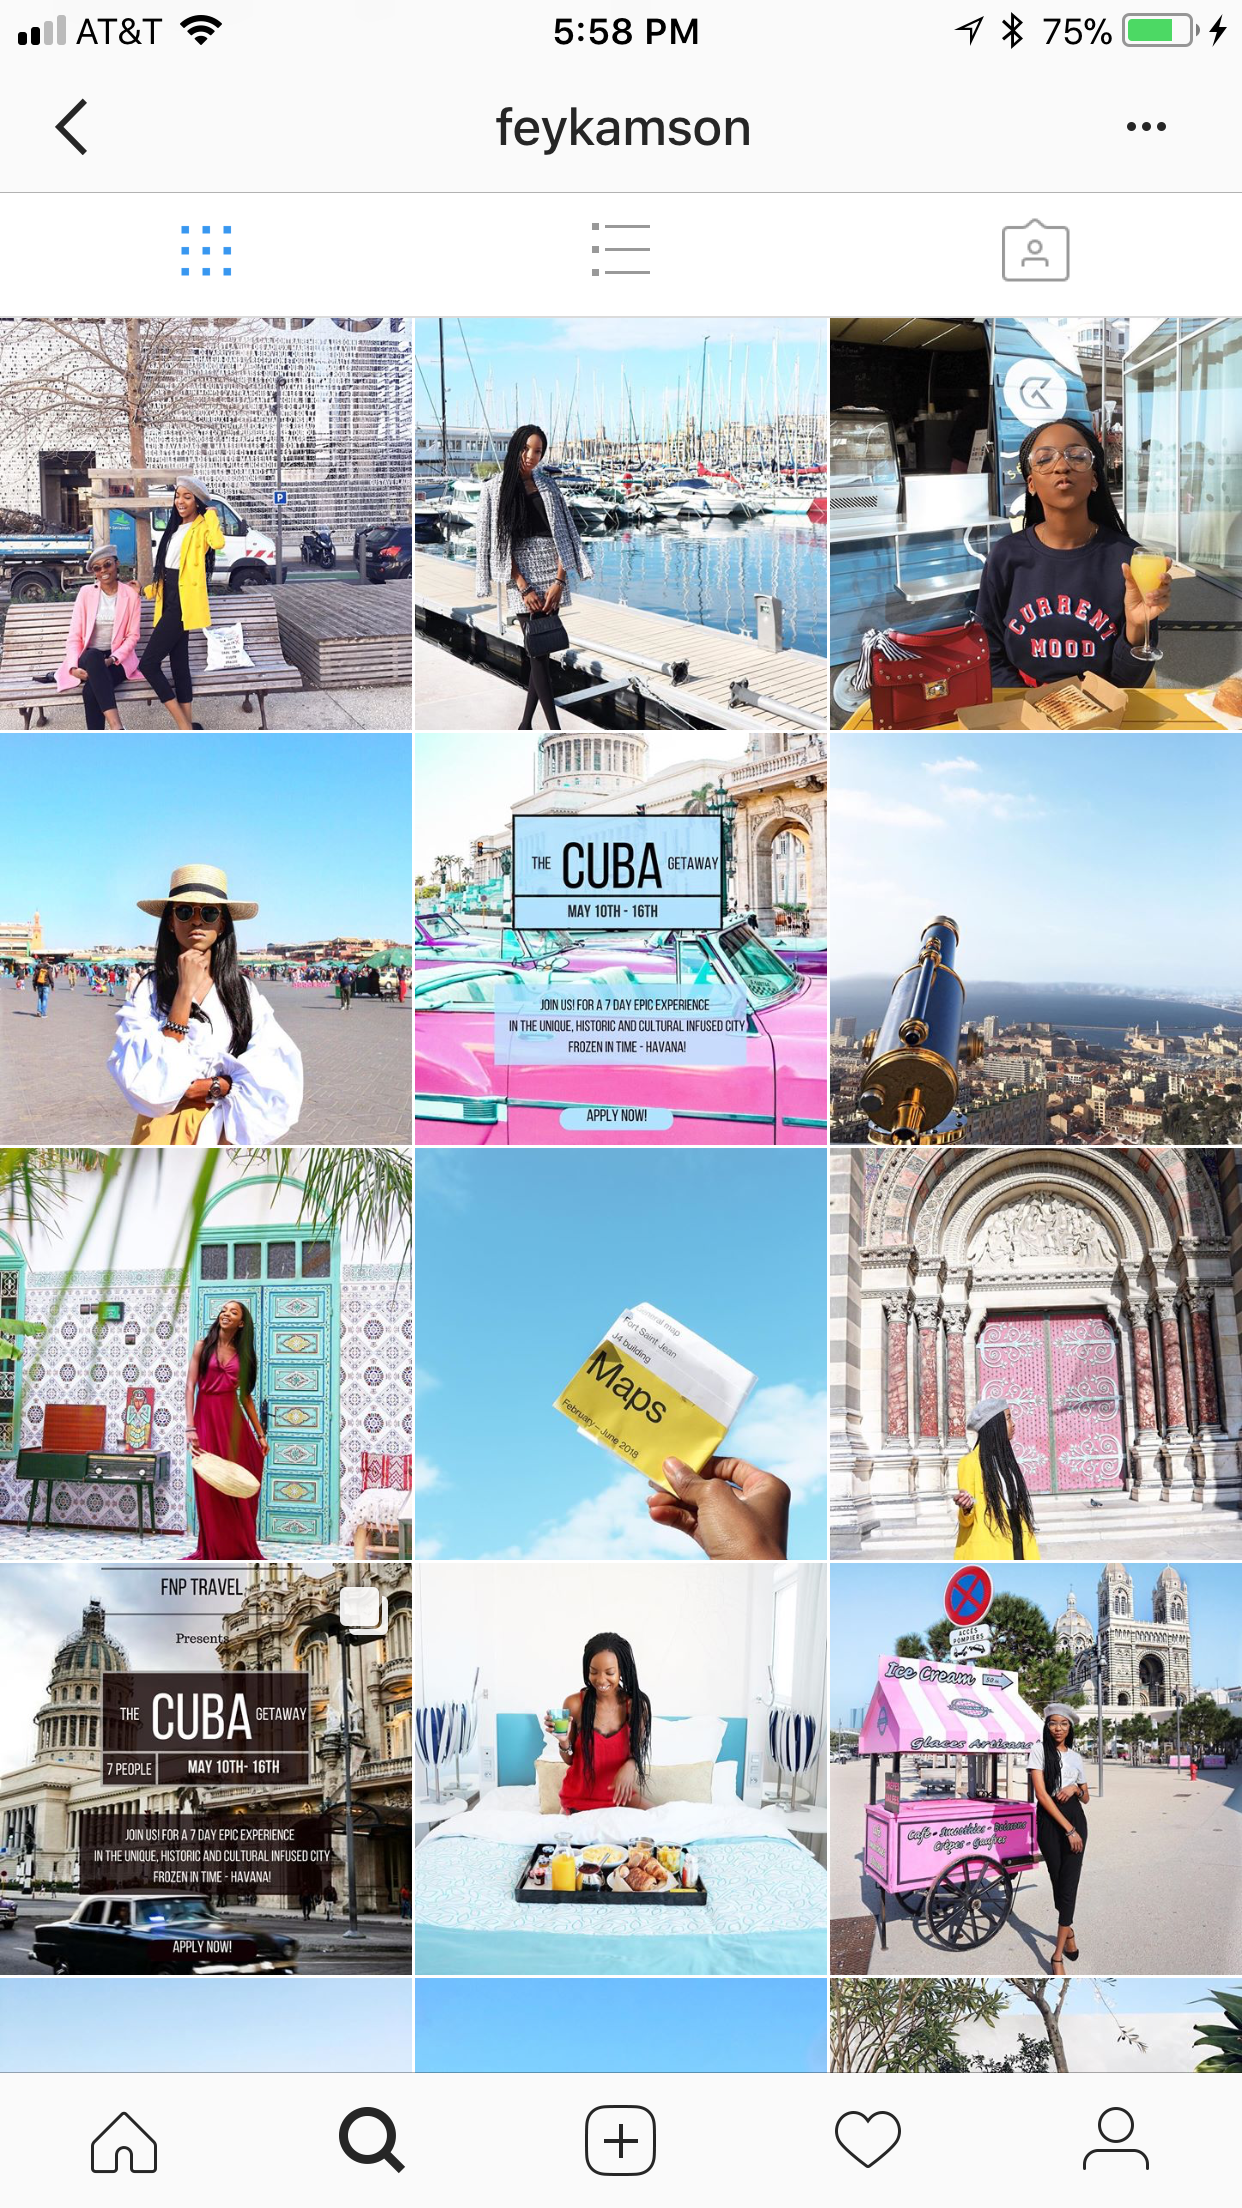 Fey Kamson - Fey is a travel blogger who makes me so happy. You guys know how much I love traveling and exploring the world and seeing a travel blogger always excites and intrigues me. I've always dreamt of being a travel blogger and I am working on that but for now I can live my dreams through Fey's blog and instagram feed. She even has a company called FNP Travel. The service her company provides is vacation planning. When she's not busy with her company, she spends time on her blog giving us travel tips, sharing her experience and so much more. She is a delight. Visit her website at http://www.fnptravel.comFollow her instagram at @feykamson